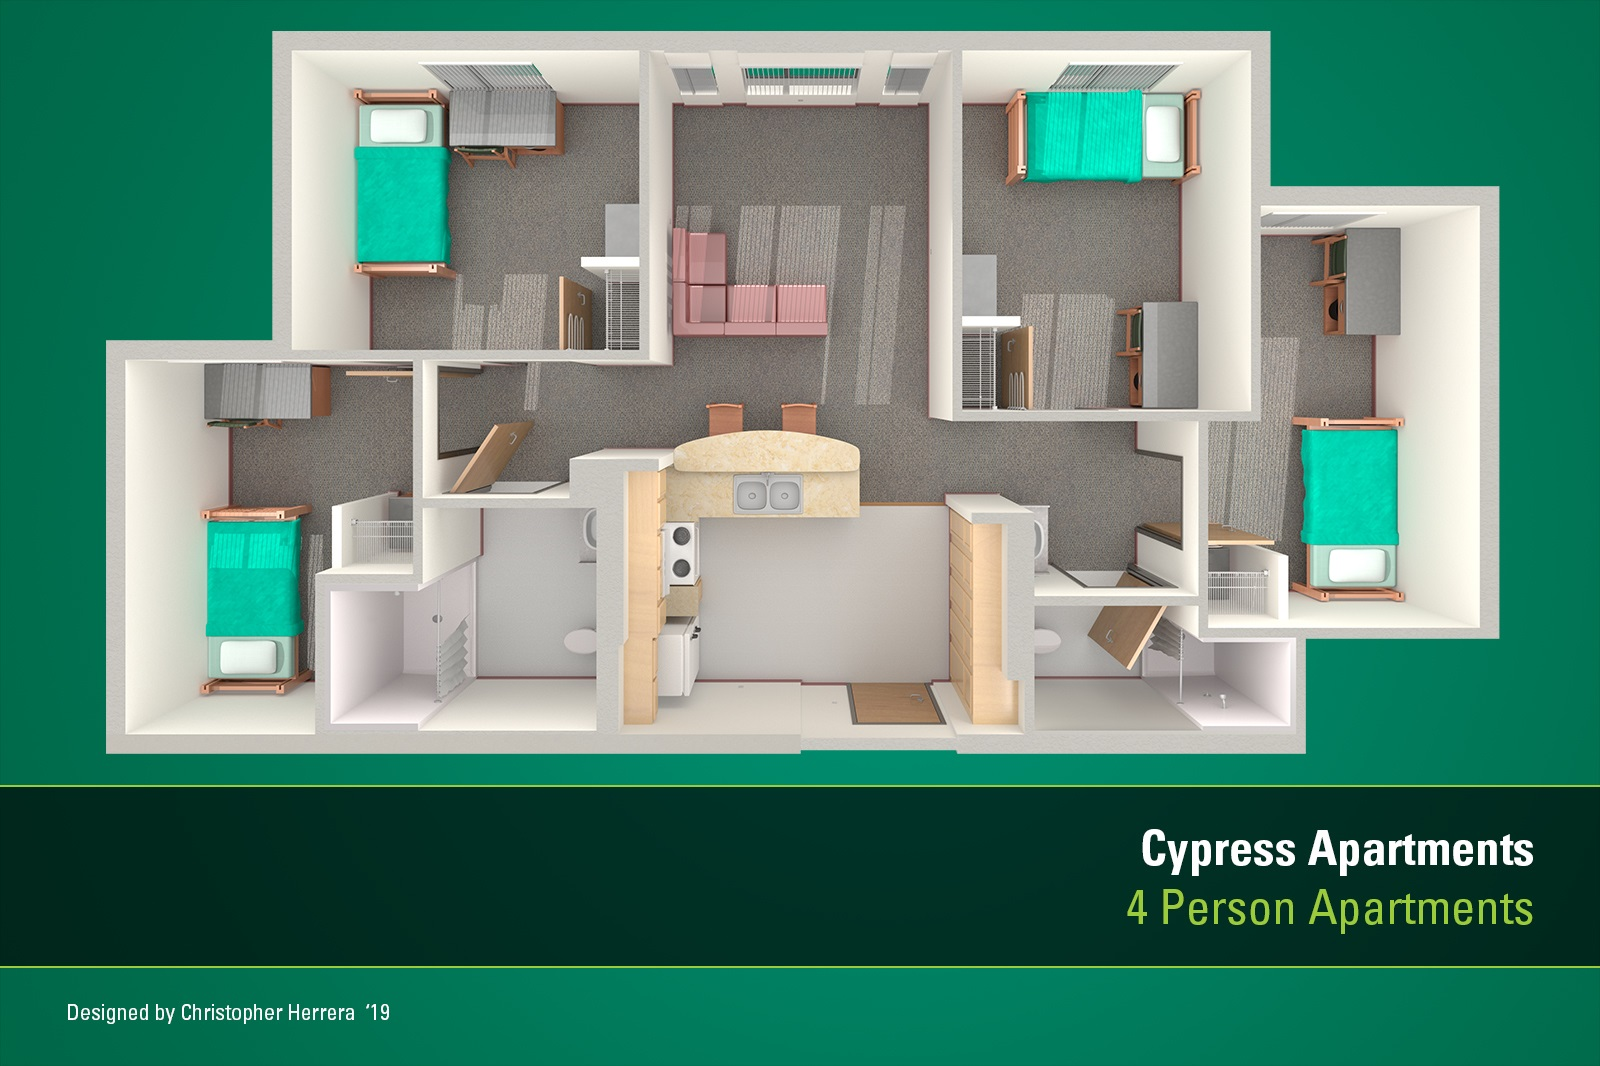 USF Tampa housing apartment floor plan for Cypress Apartments.